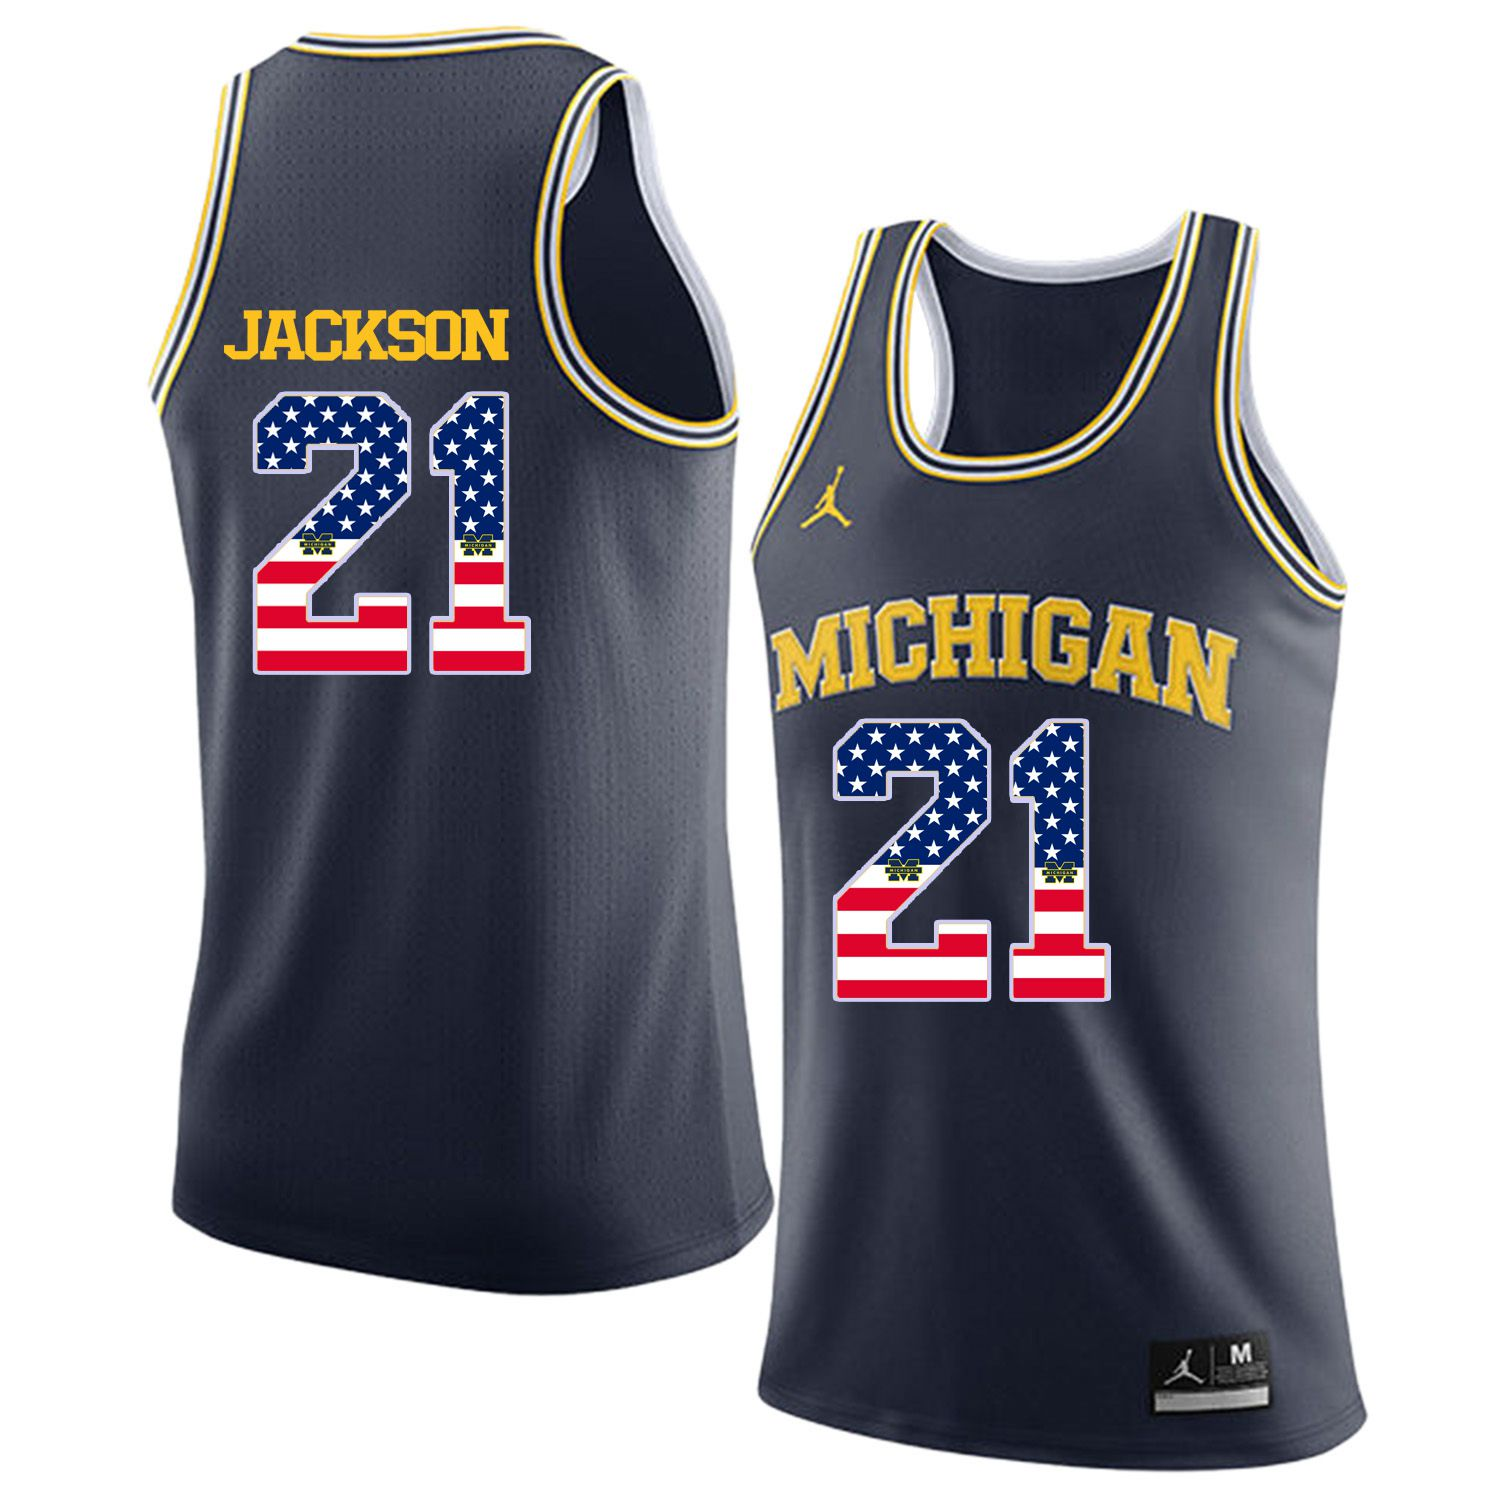 Men Jordan University of Michigan Basketball Navy 21 Jackson Flag Customized NCAA Jerseys